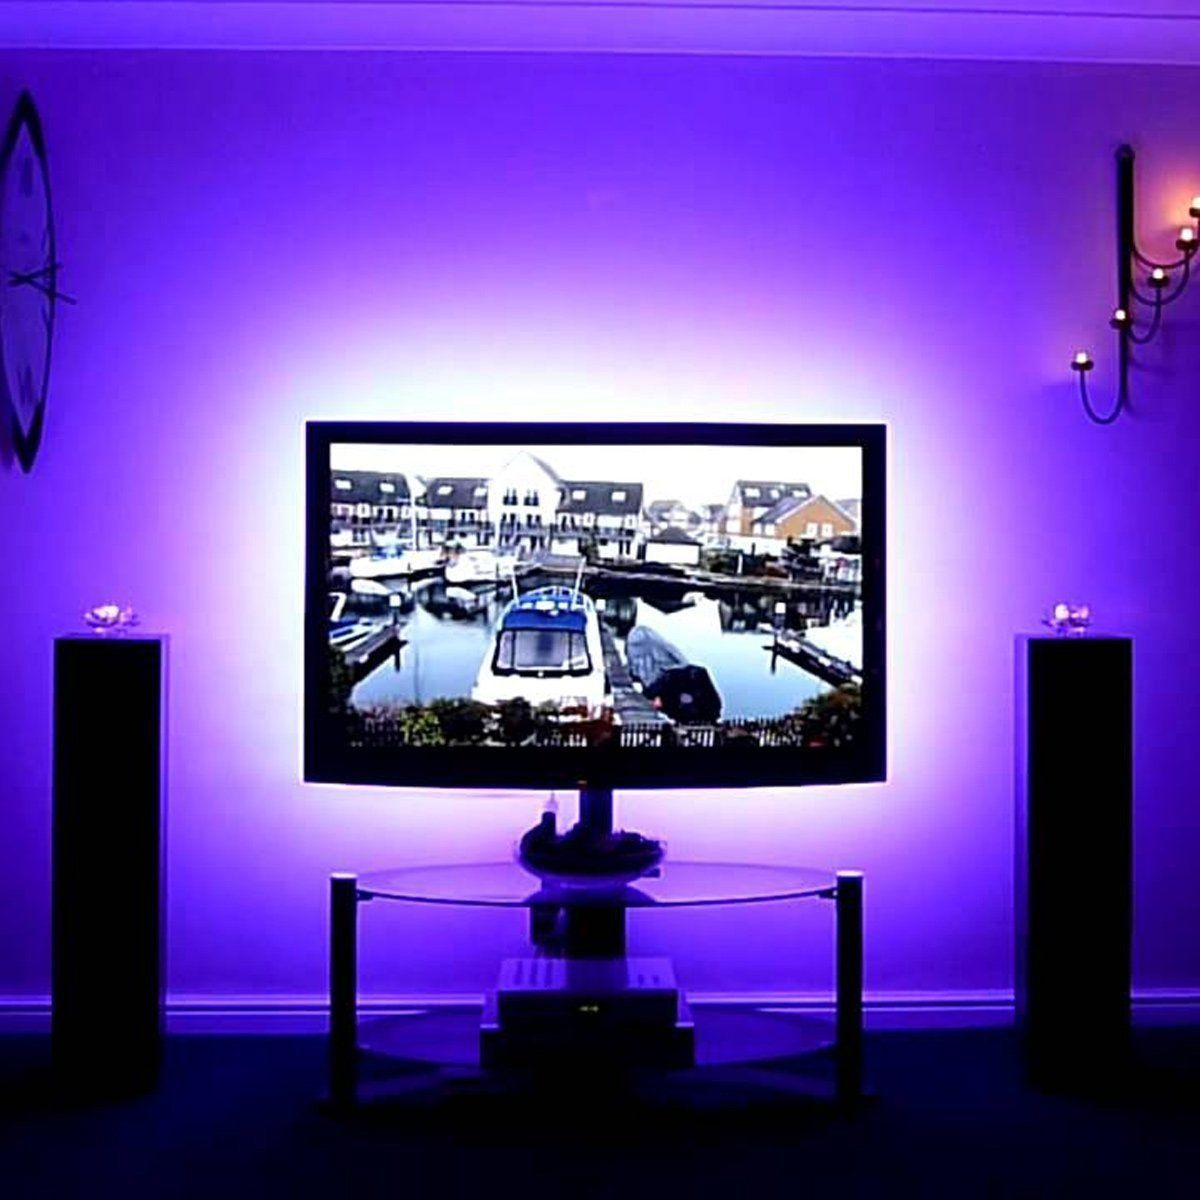 LightGeeks Remote Controlled LED Strips (16 feet/5 Meters